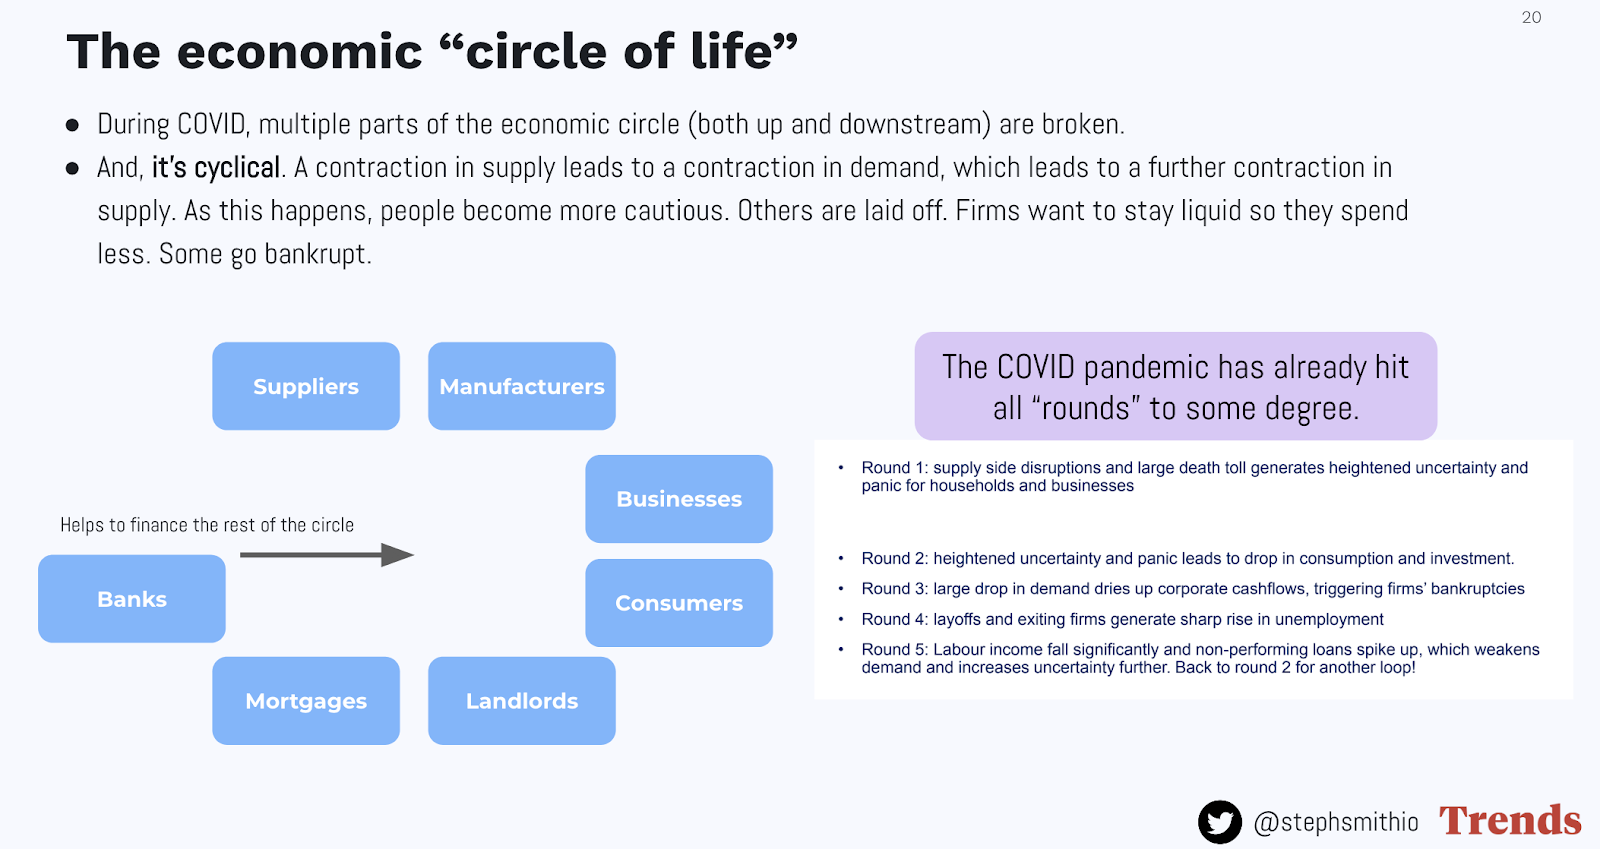 The economic circle of life showing how COVID impacts the overall cycle.